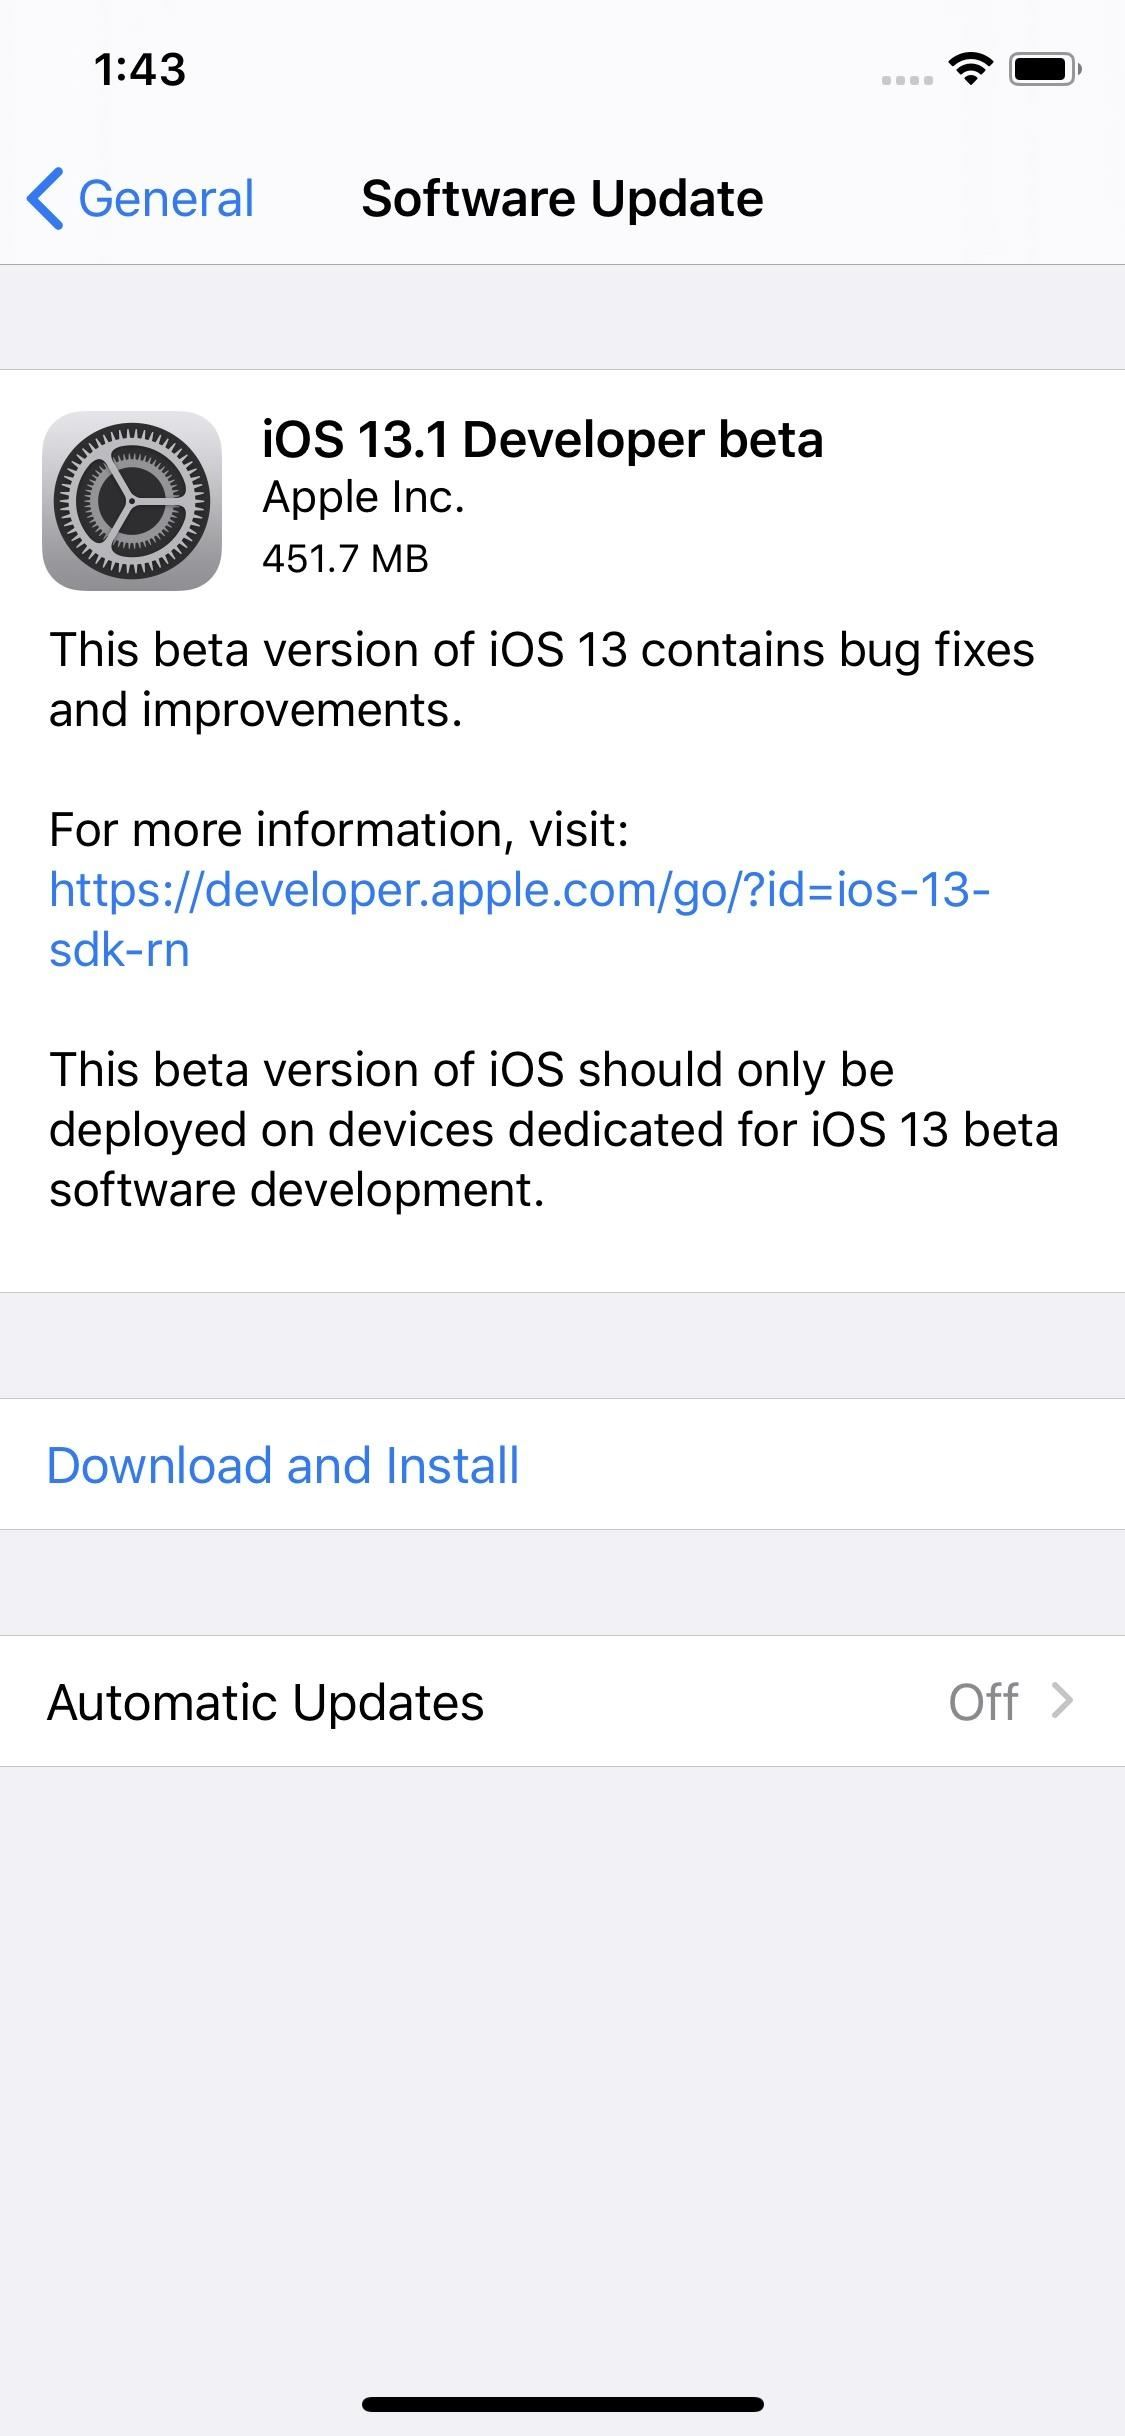 Apple's iOS 13.1 Developer Beta 1 for iPhone Now Available — Before iOS 13's Stable Release